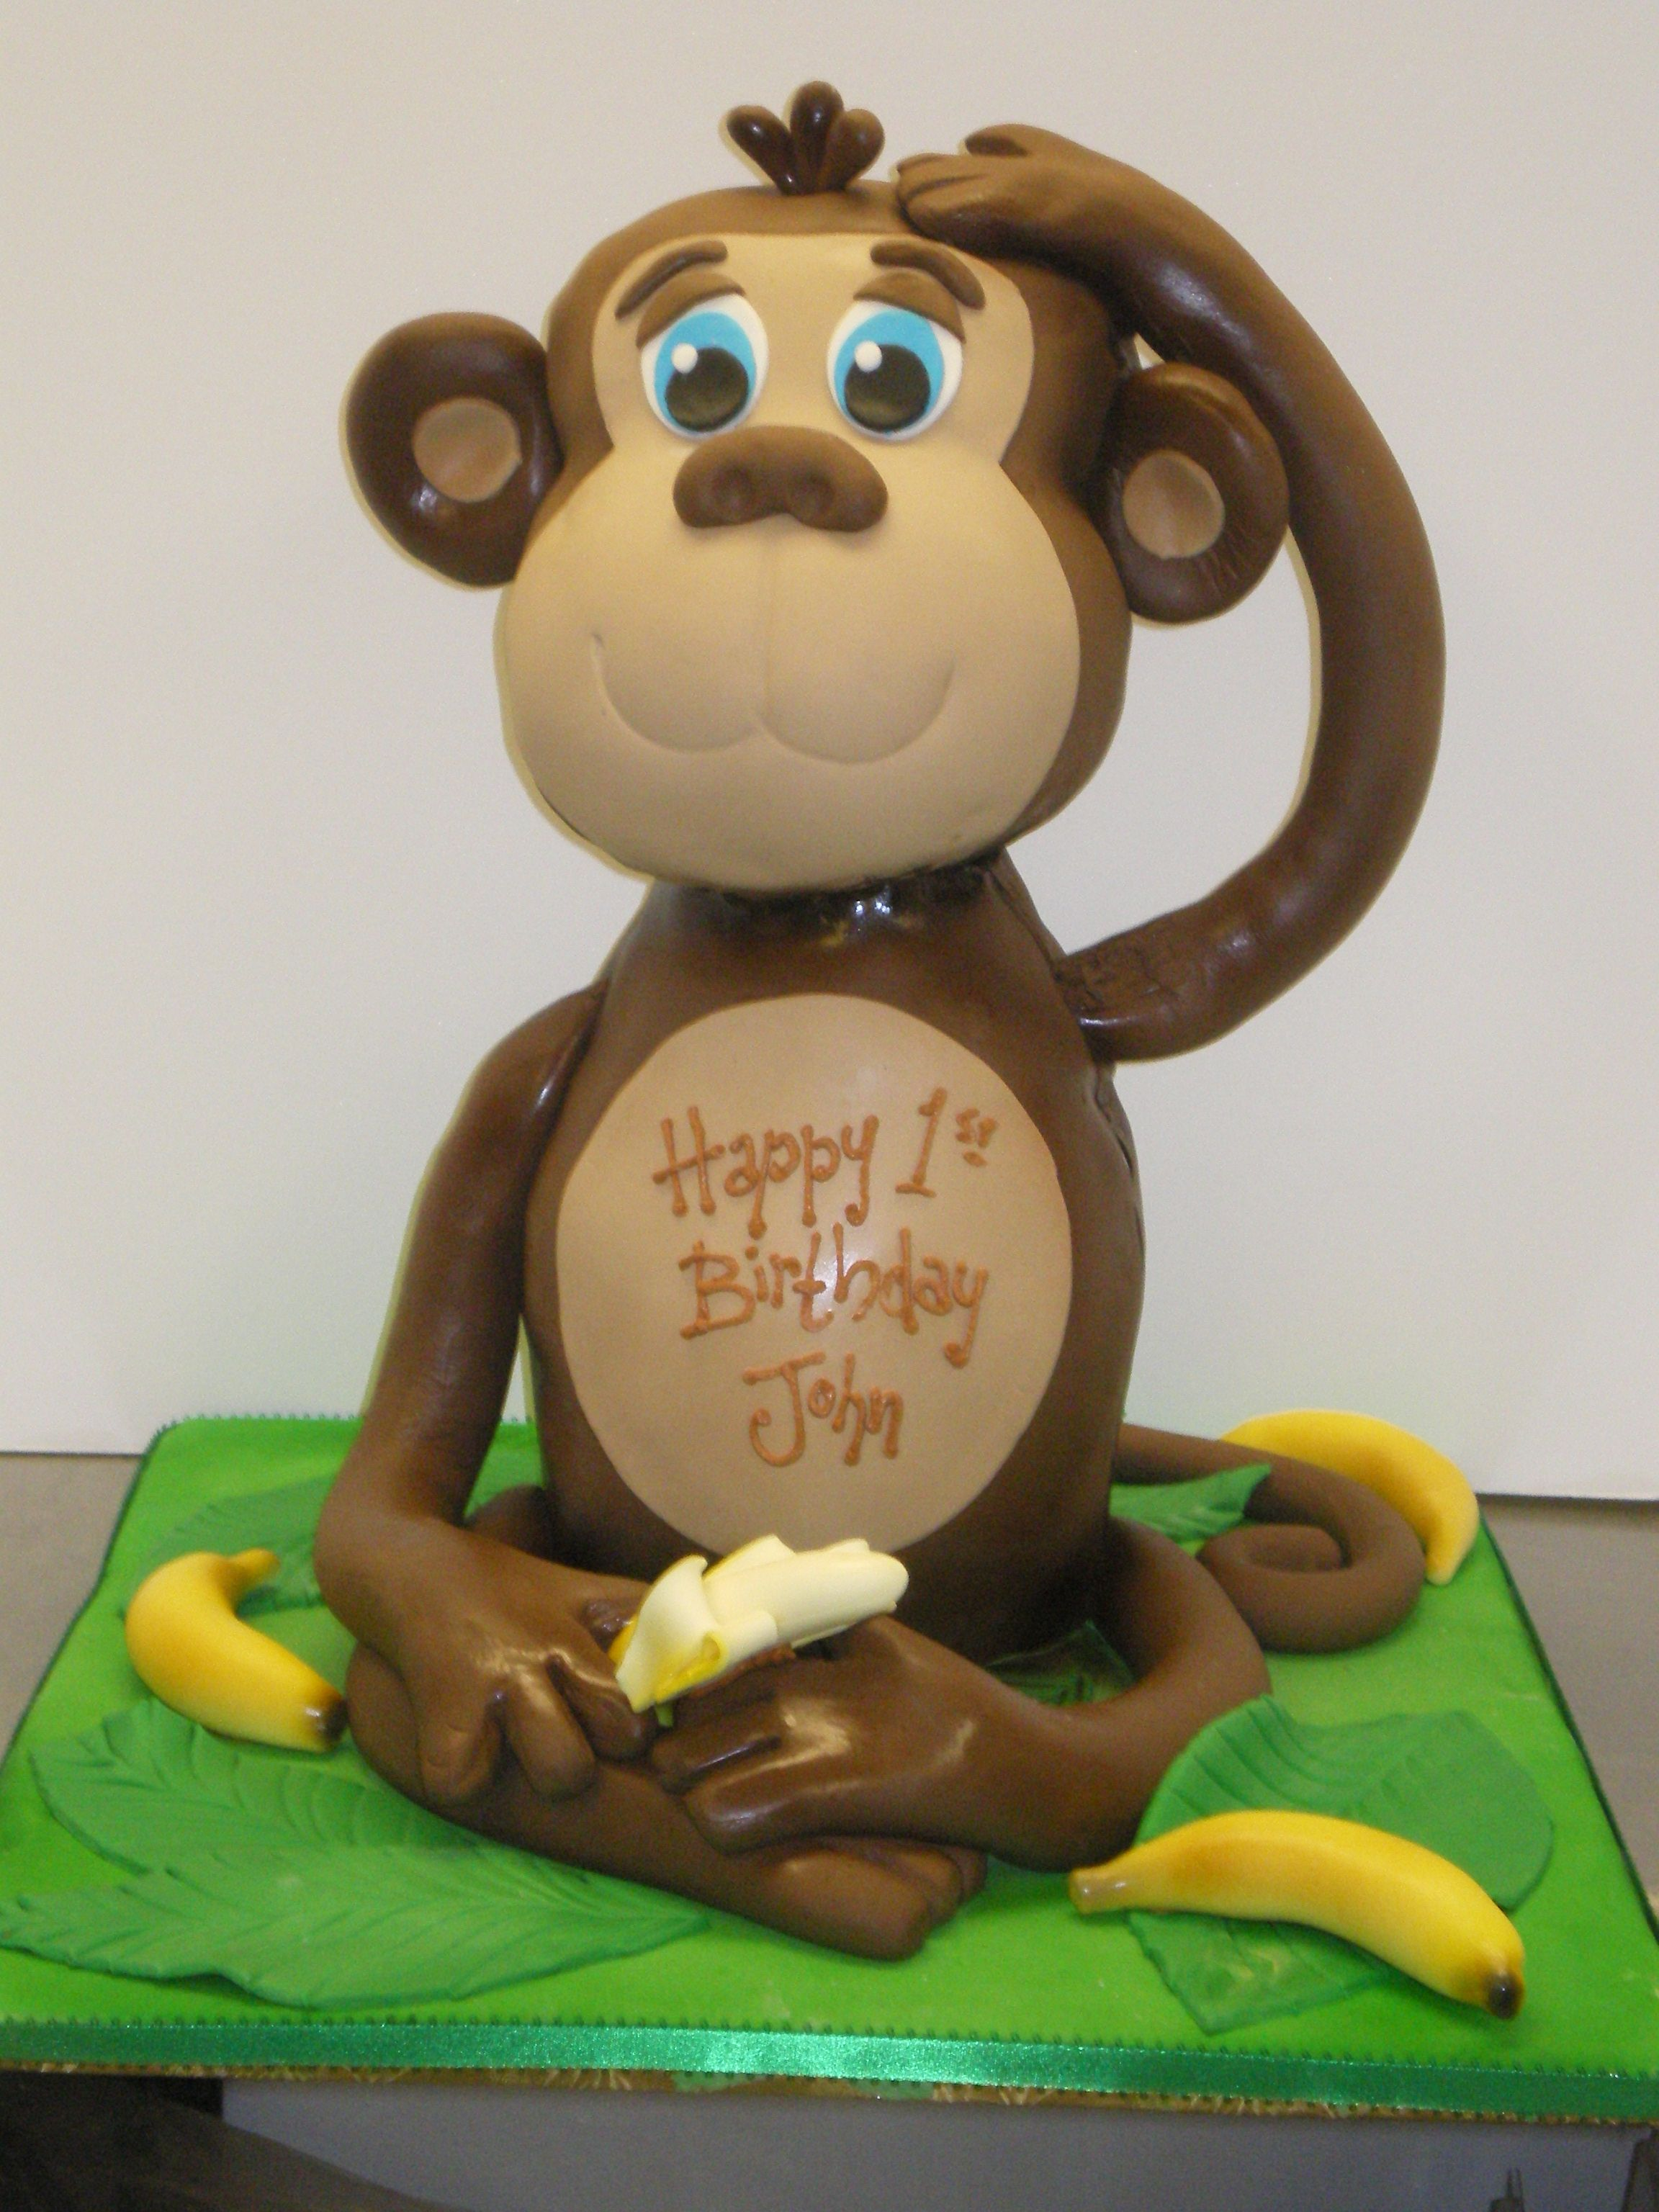 Modeling Chocolate Monkey | Modeling chocolate | Pinterest ...